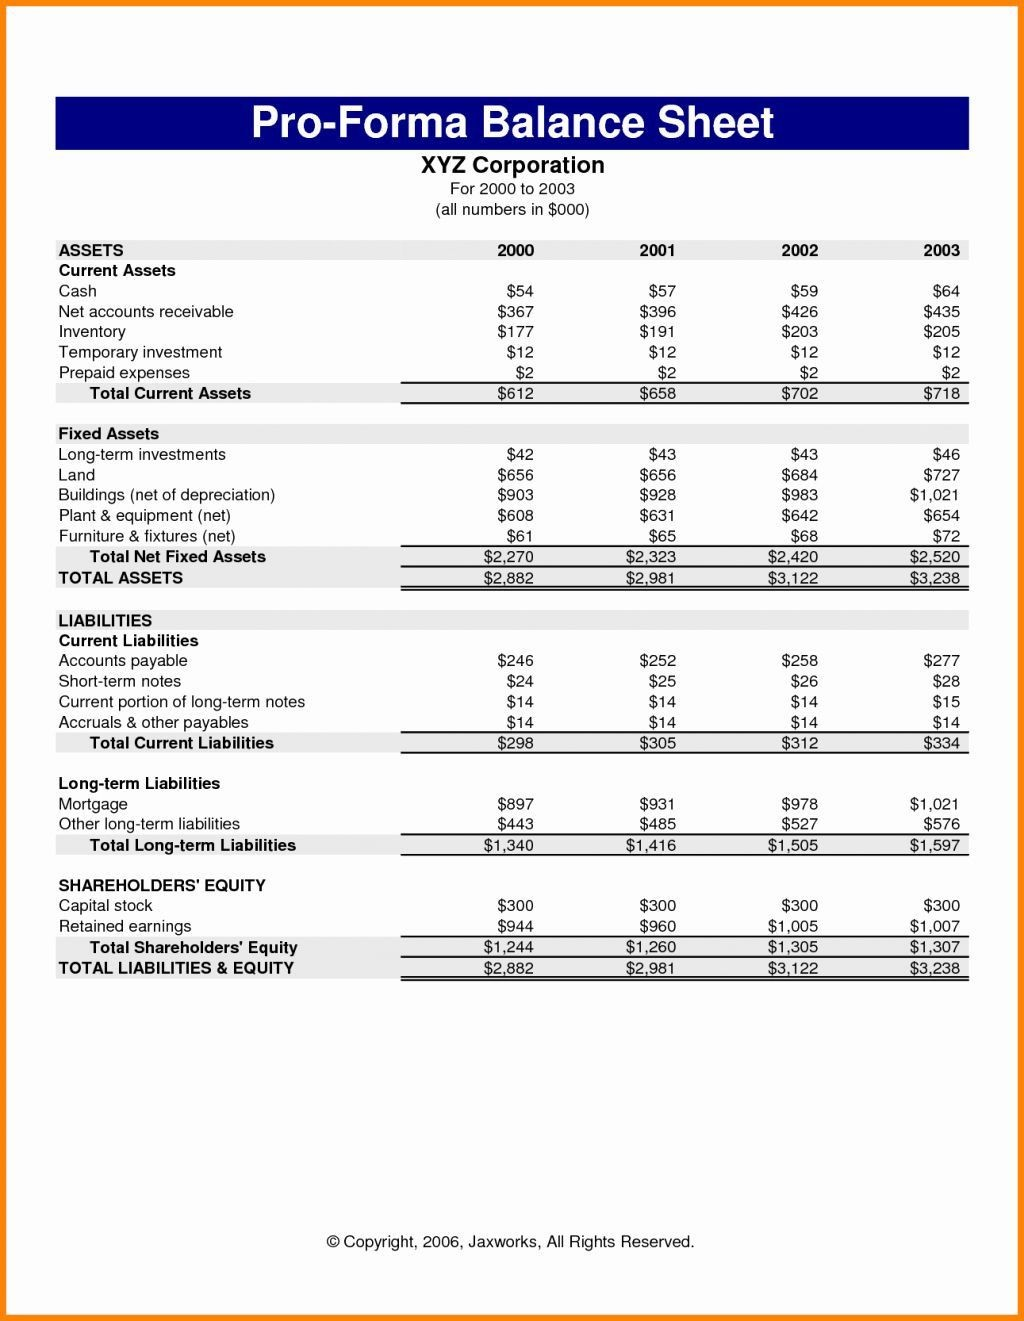 001 Simple Pro Forma Financial Statement Template High Resolution  Format SampleLarge